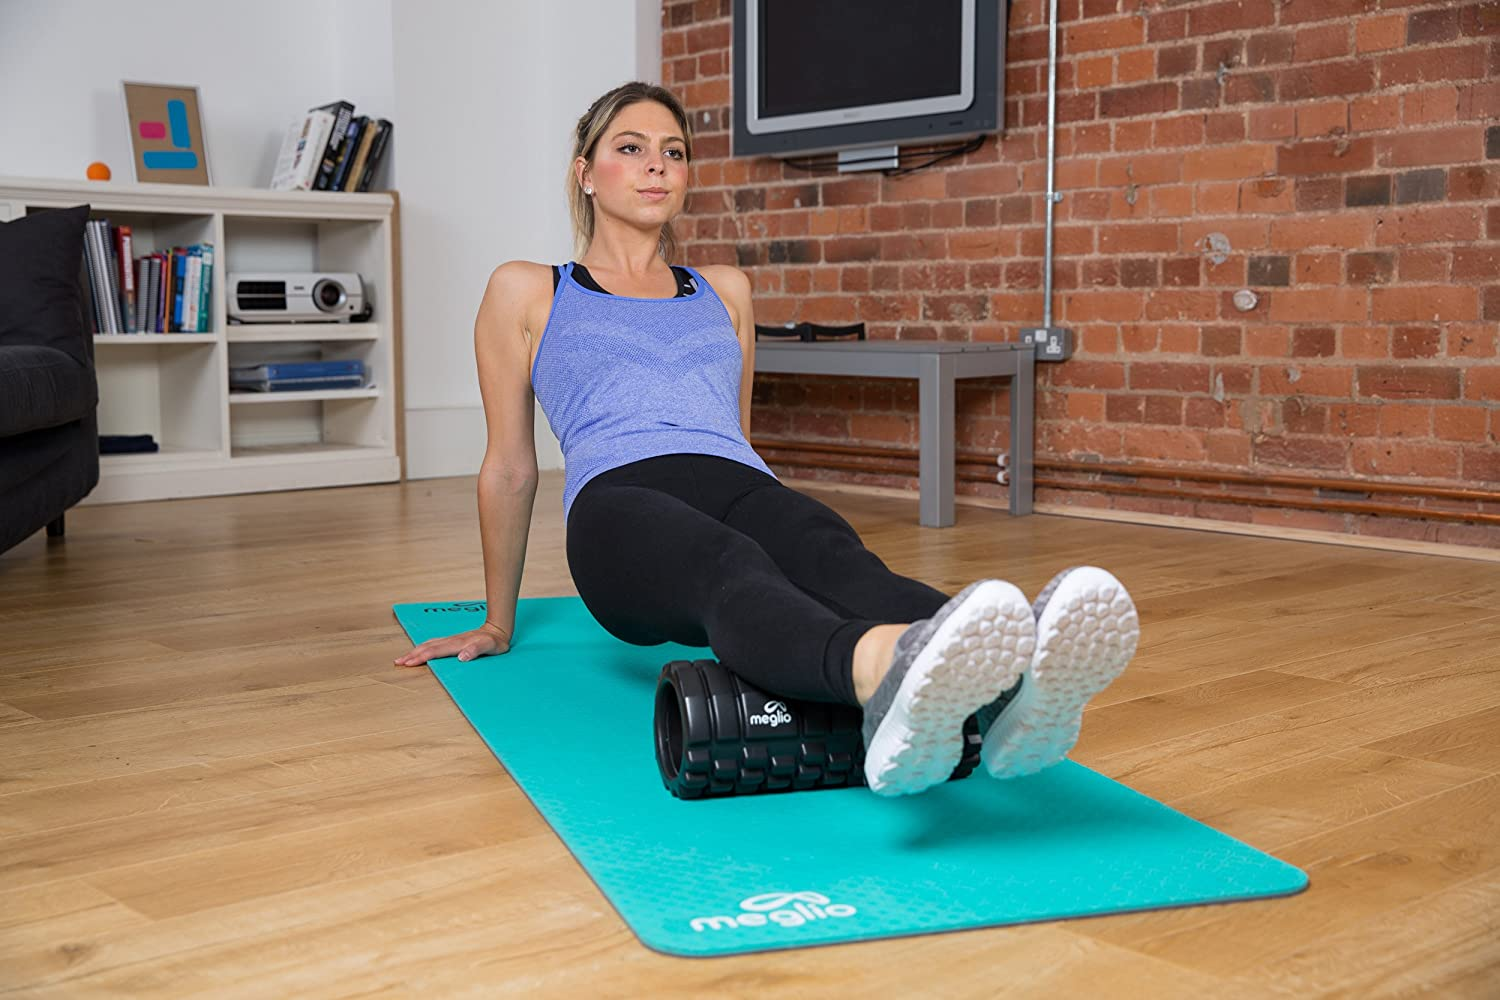 Rehabilitation Yoga /& Pilates Muscle Ideal for Deep Tissue Massage and Myofascial Release Grid Foam Roller for Muscle Massage Includes Exercise Guide Perfect for Fitness